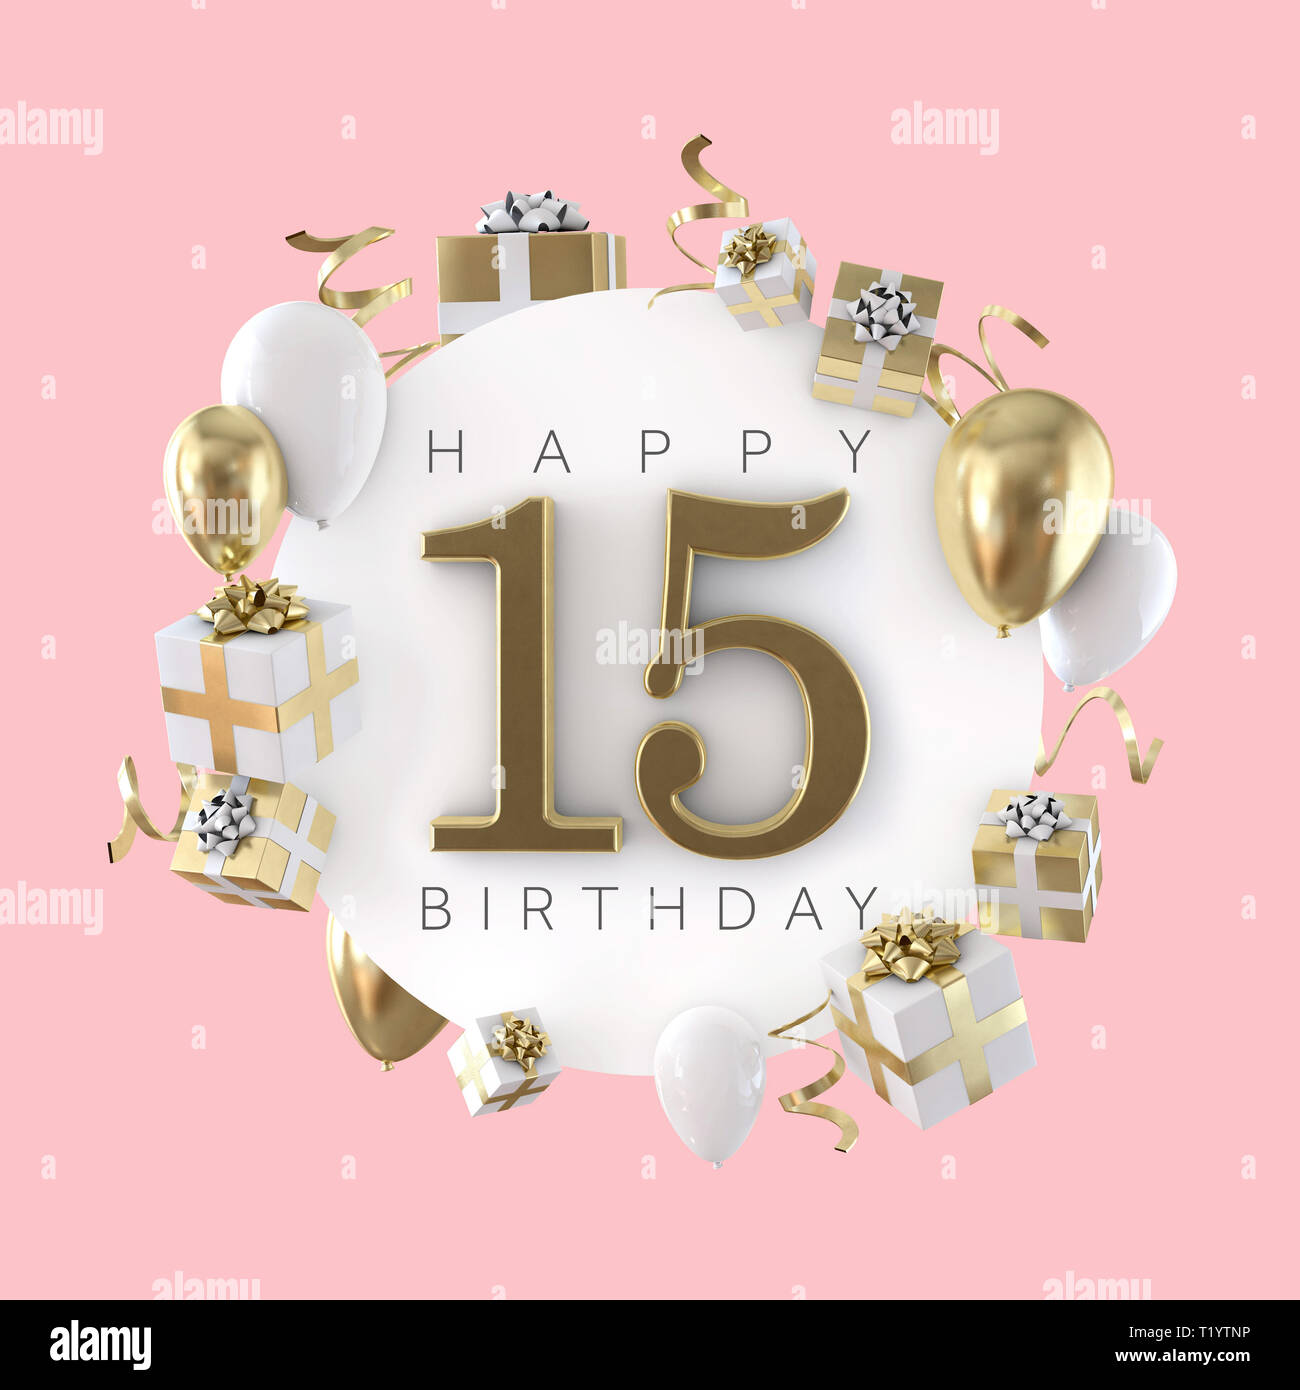 Happy 15th Birthday Party Composition With Balloons And Presents 3D Render